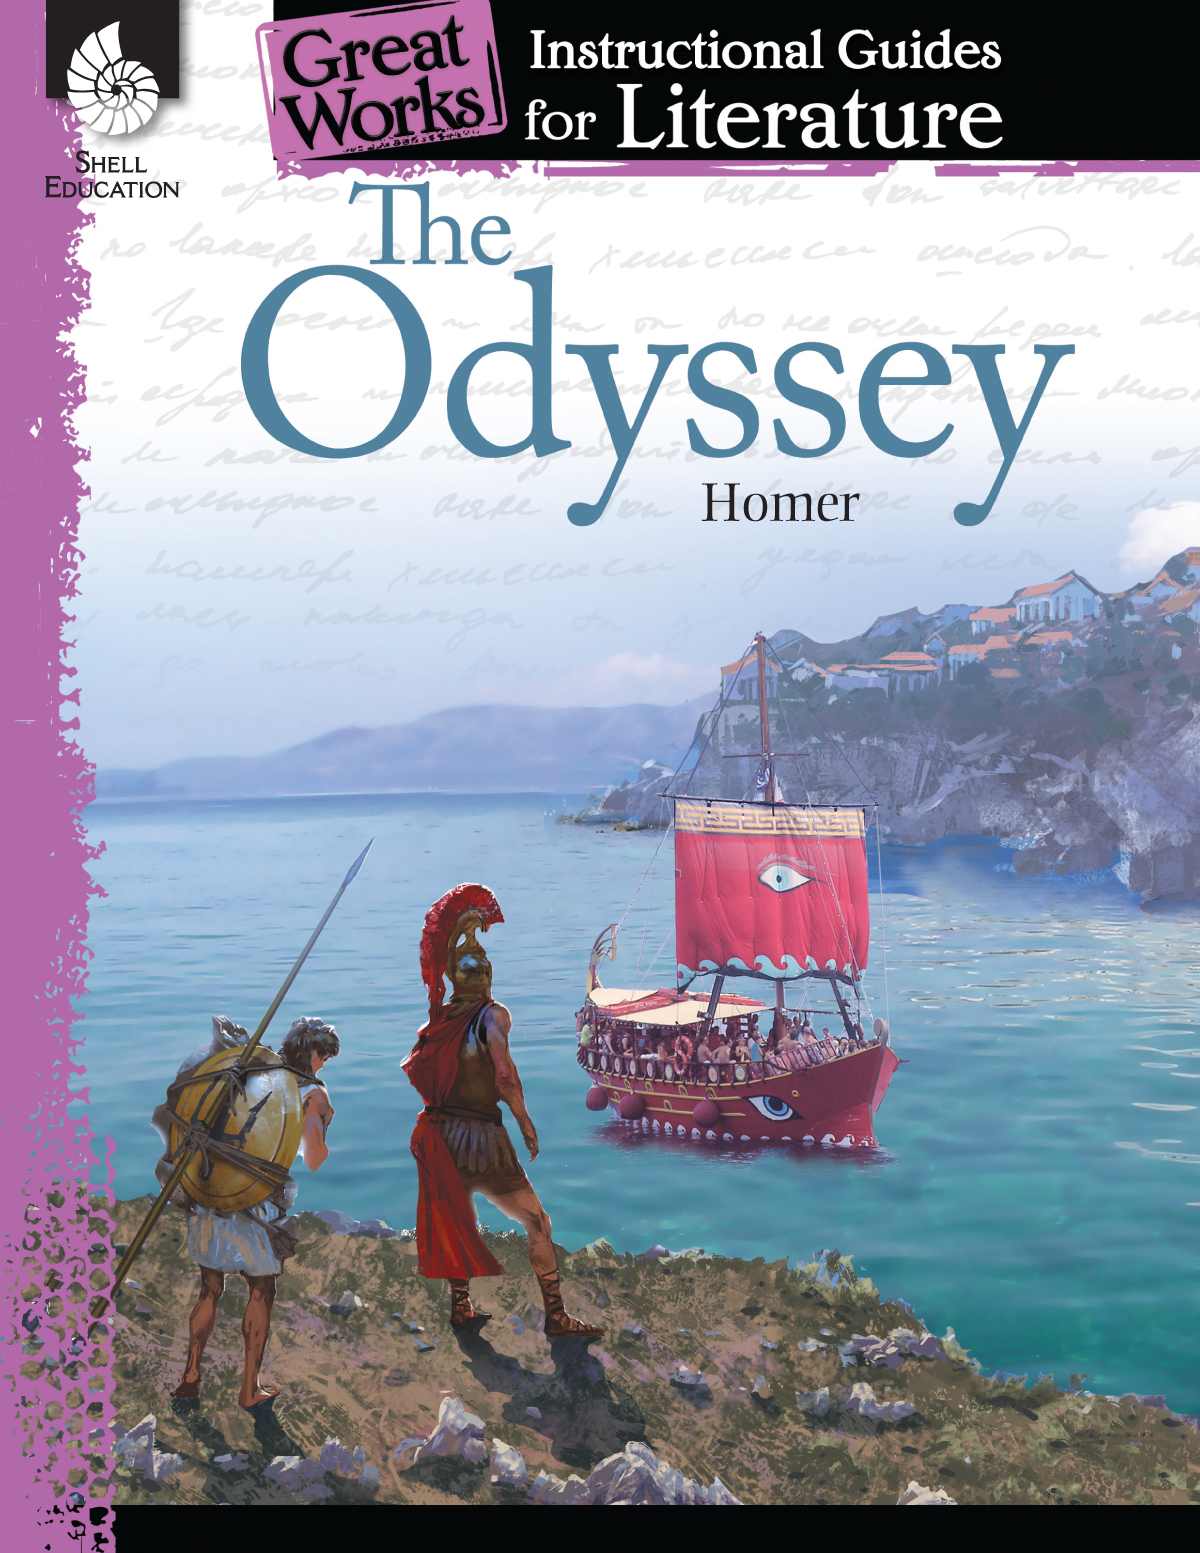 Great Works Instructional Guide for Literature: The Odyssey